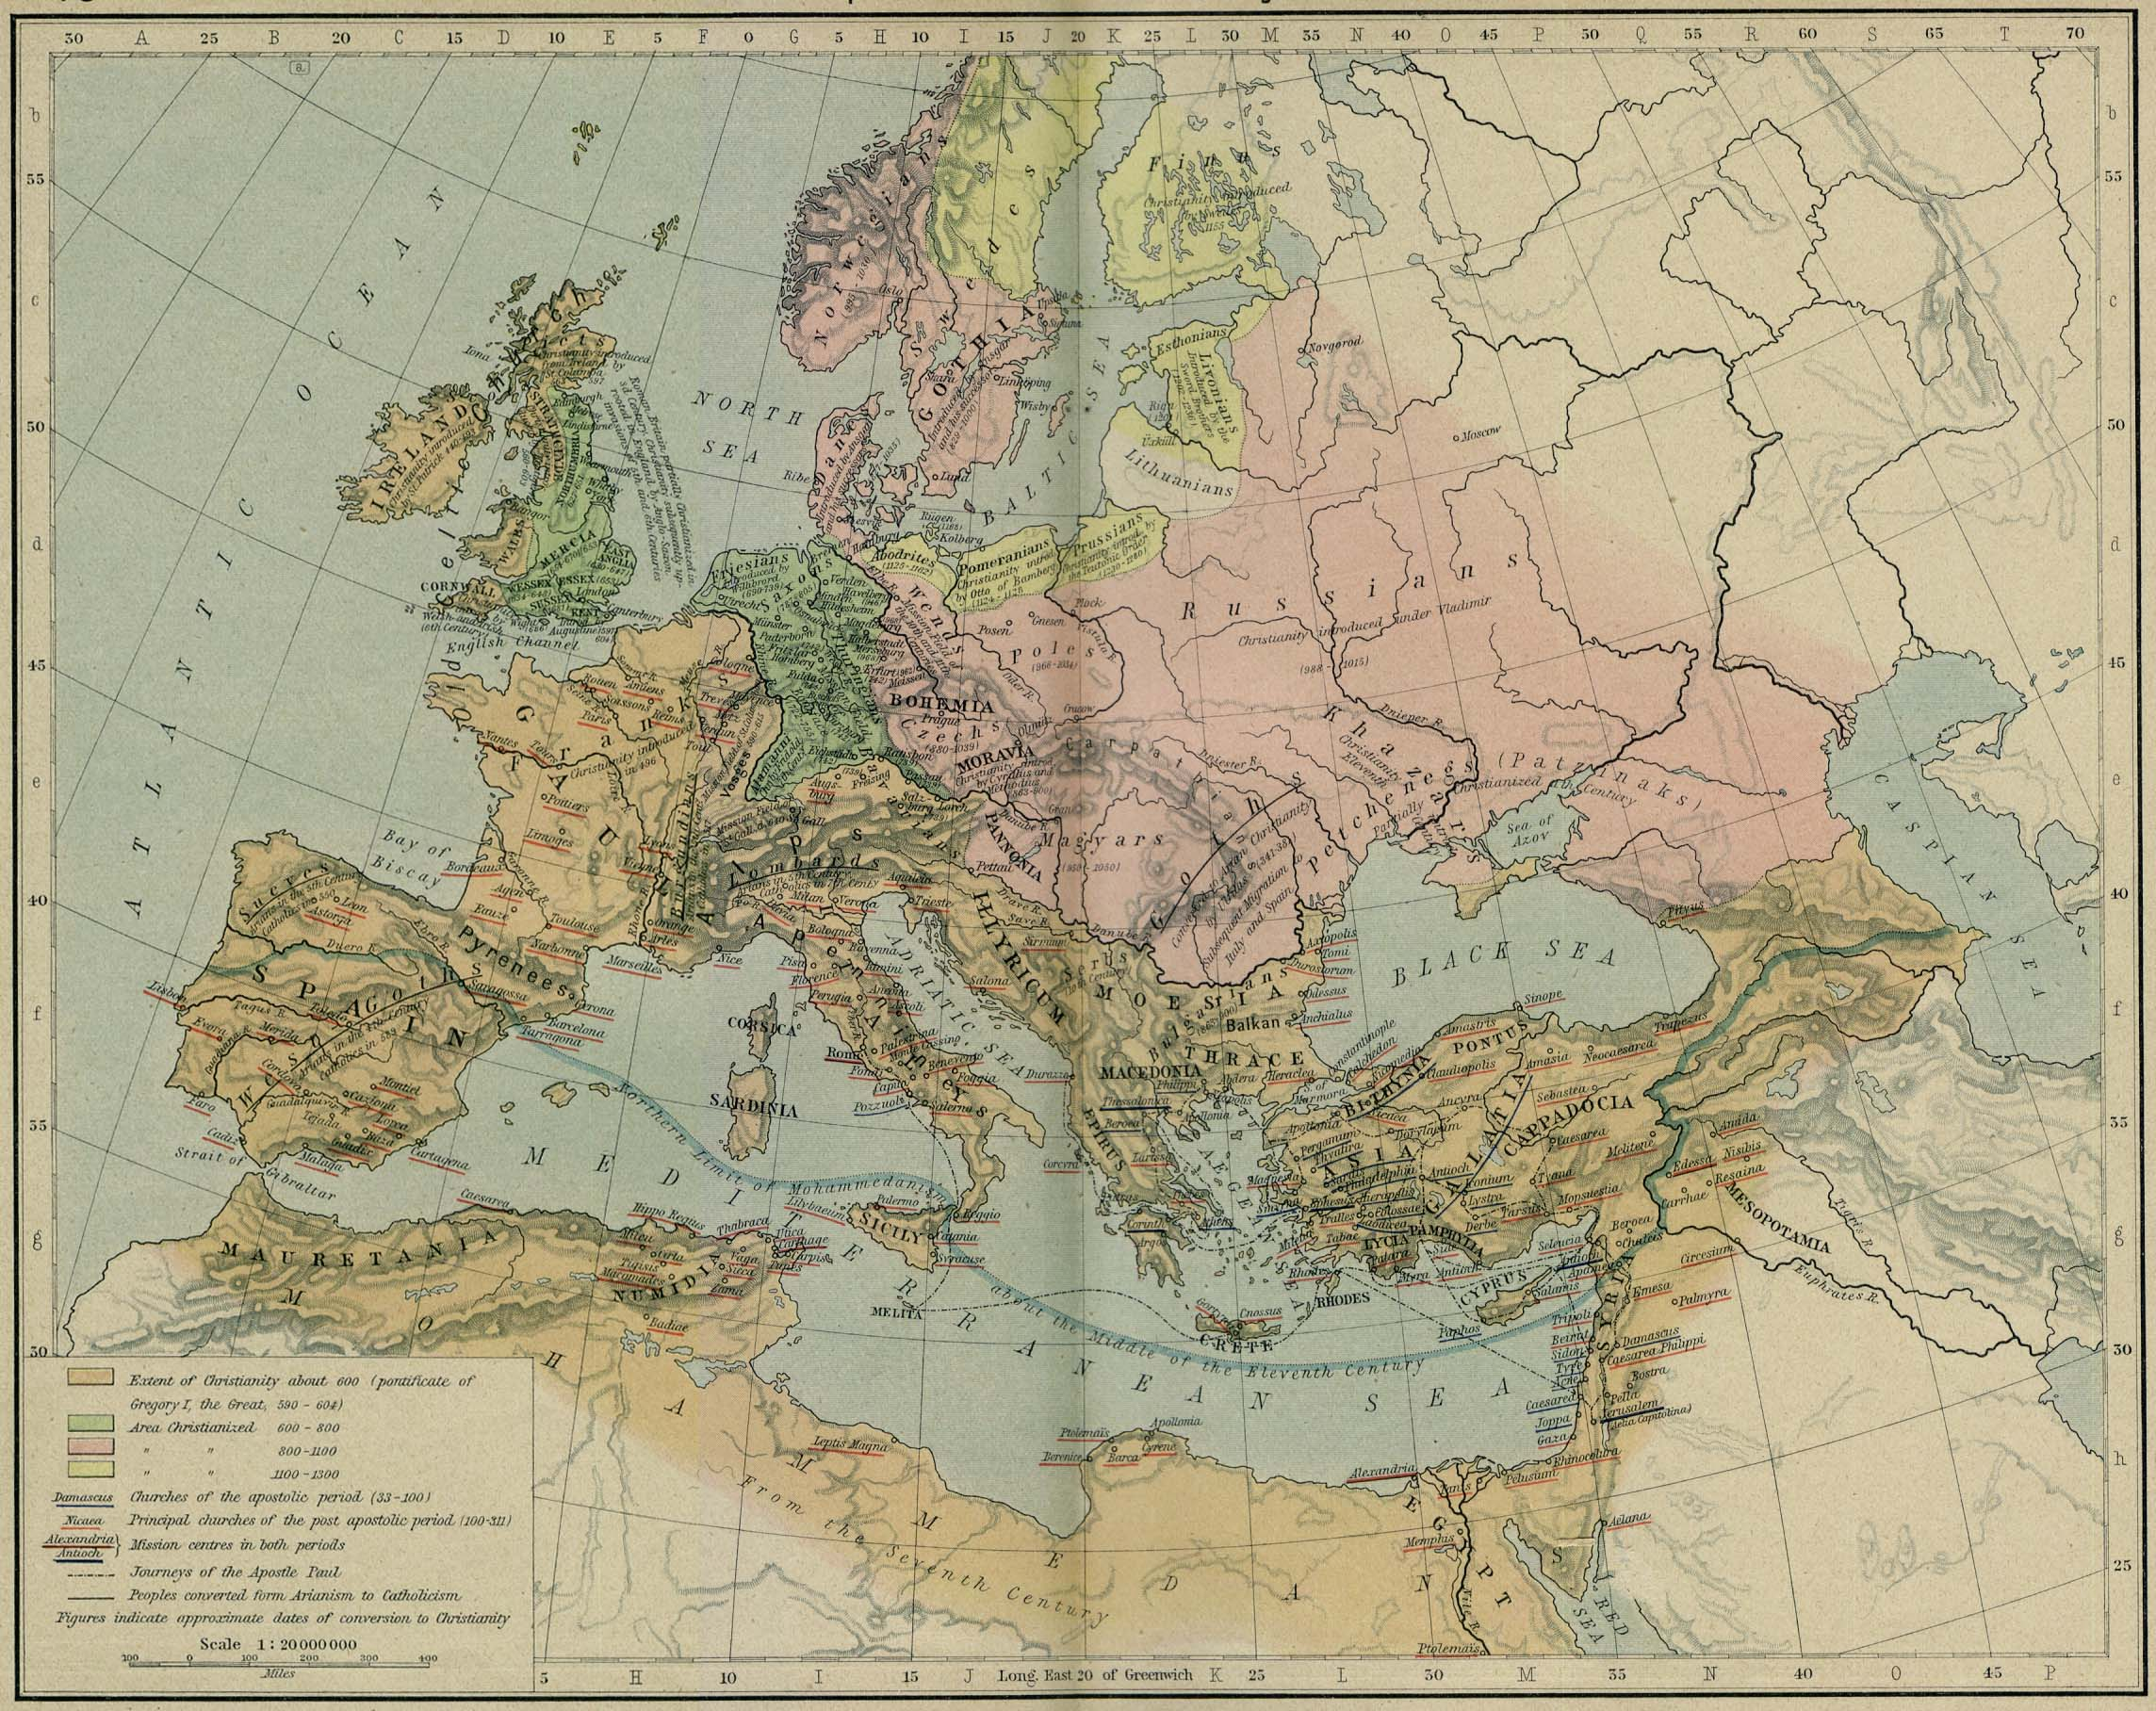 Development of Christianity in Europe 590 to 1300